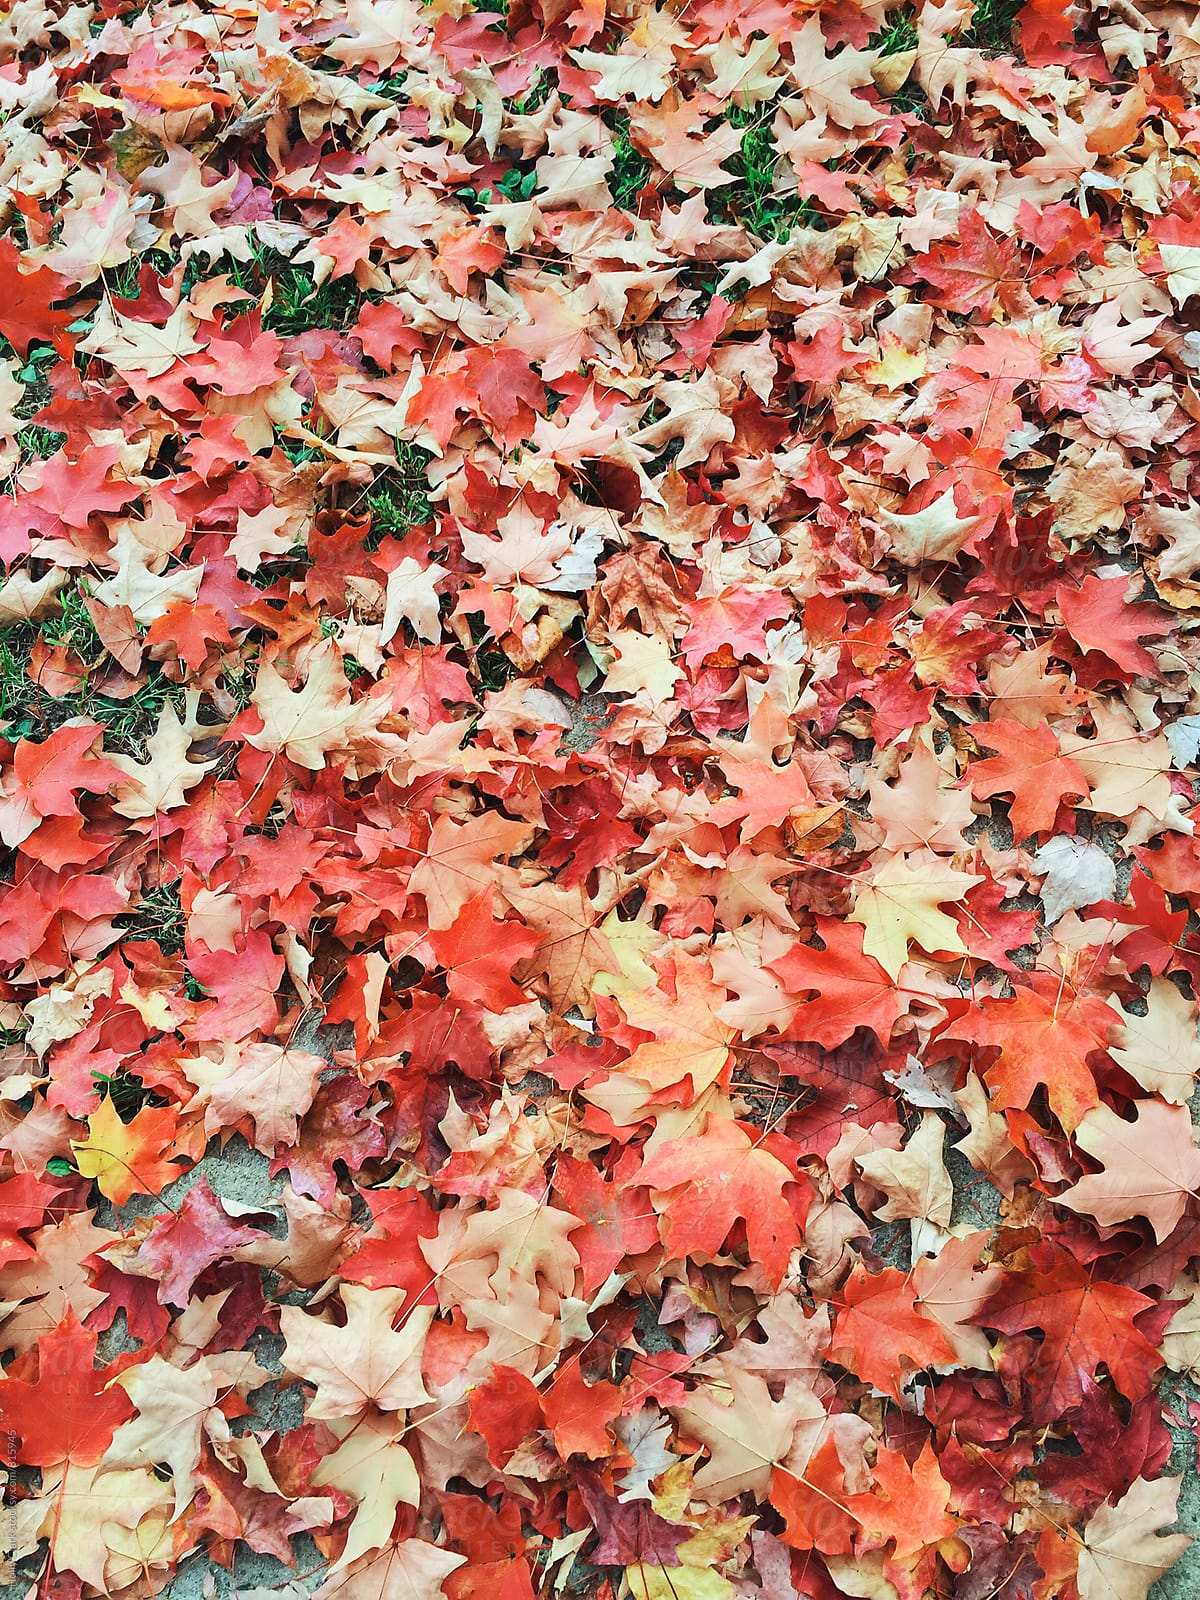 Colorful Autumn Leaves Scattered On The Ground By Holly